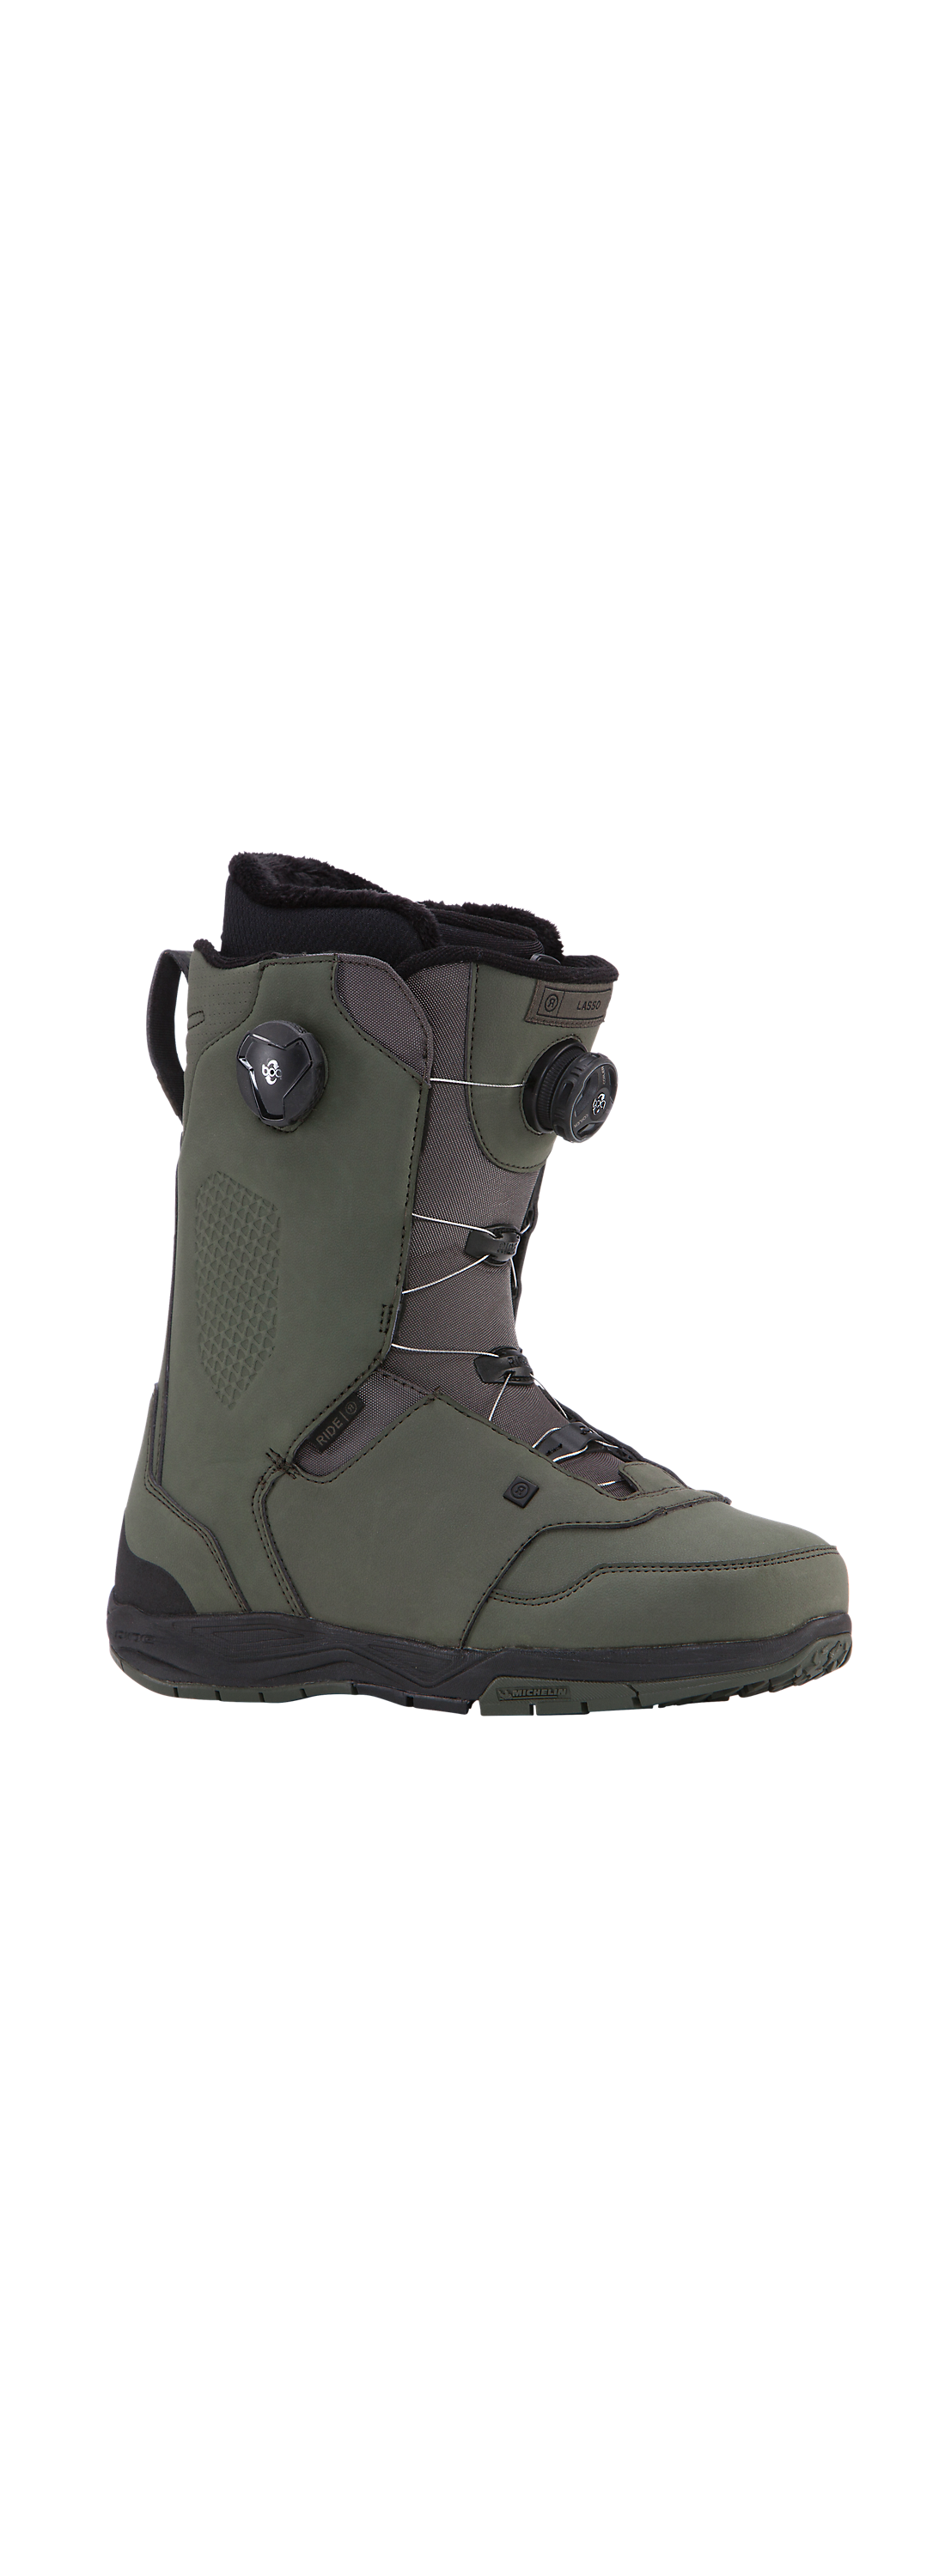 Hike clipart boot tread. Lasso ride snowboards product